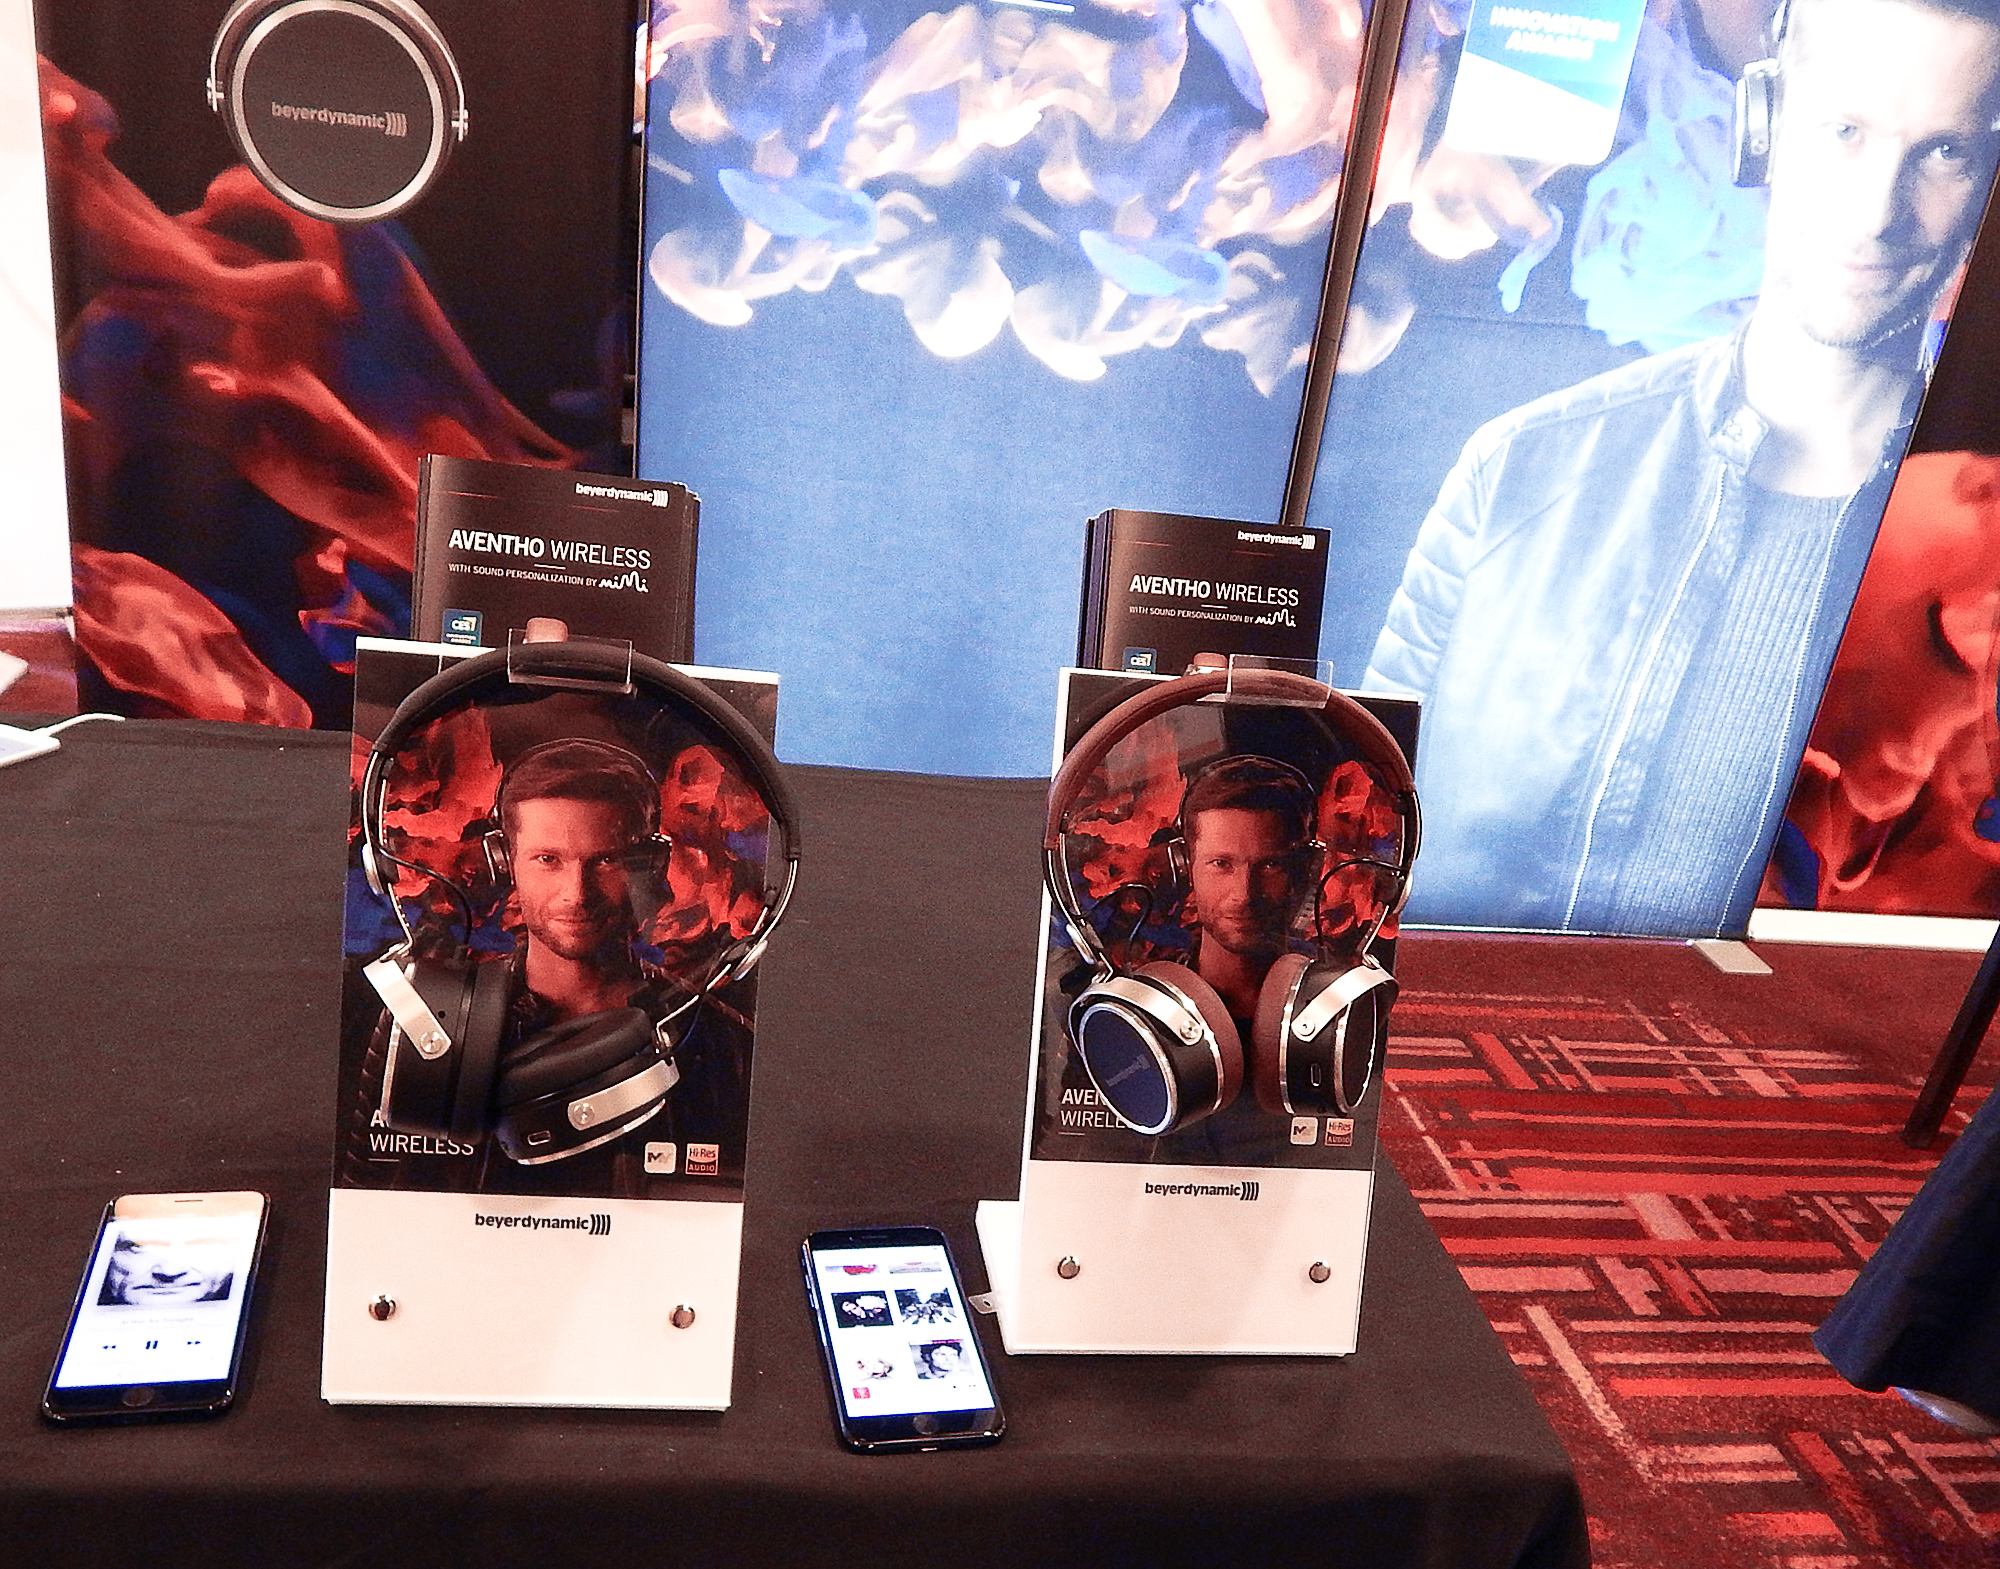 Beyerdynamic at CanJam SoCal 2018